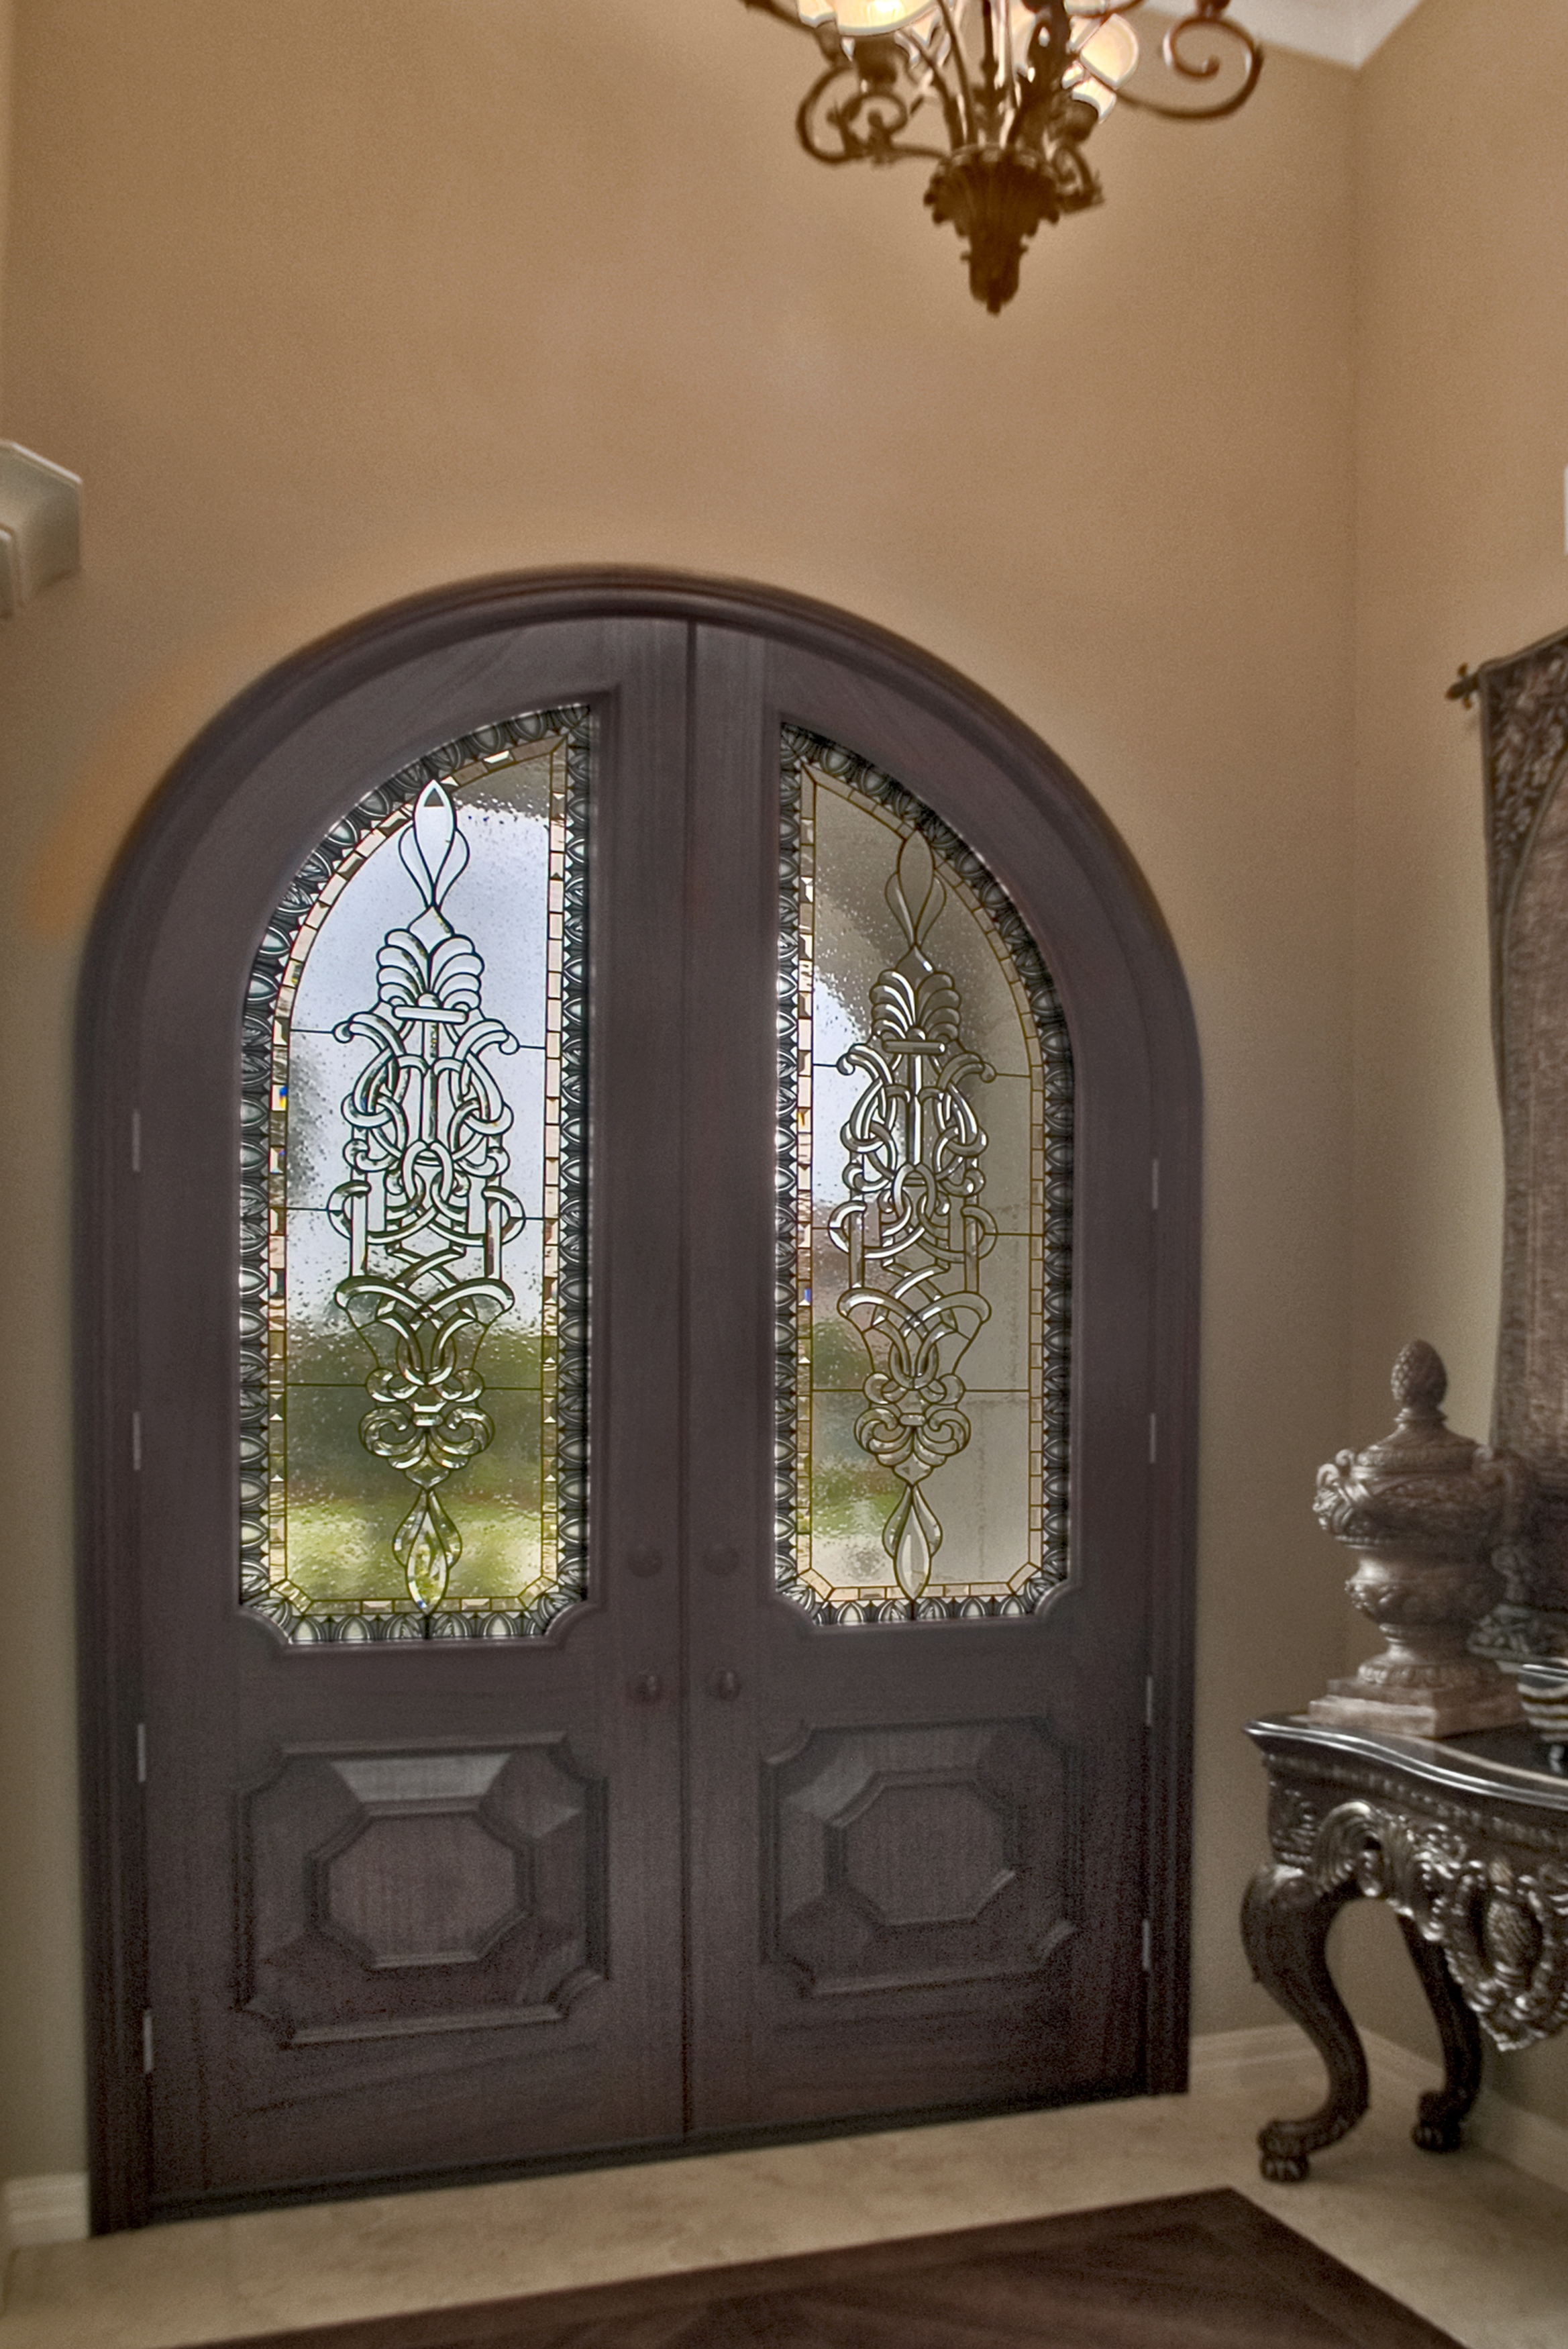 9 foot oversized wood doors with custom 6 foot tall beveled glass inserts by Preston Studios